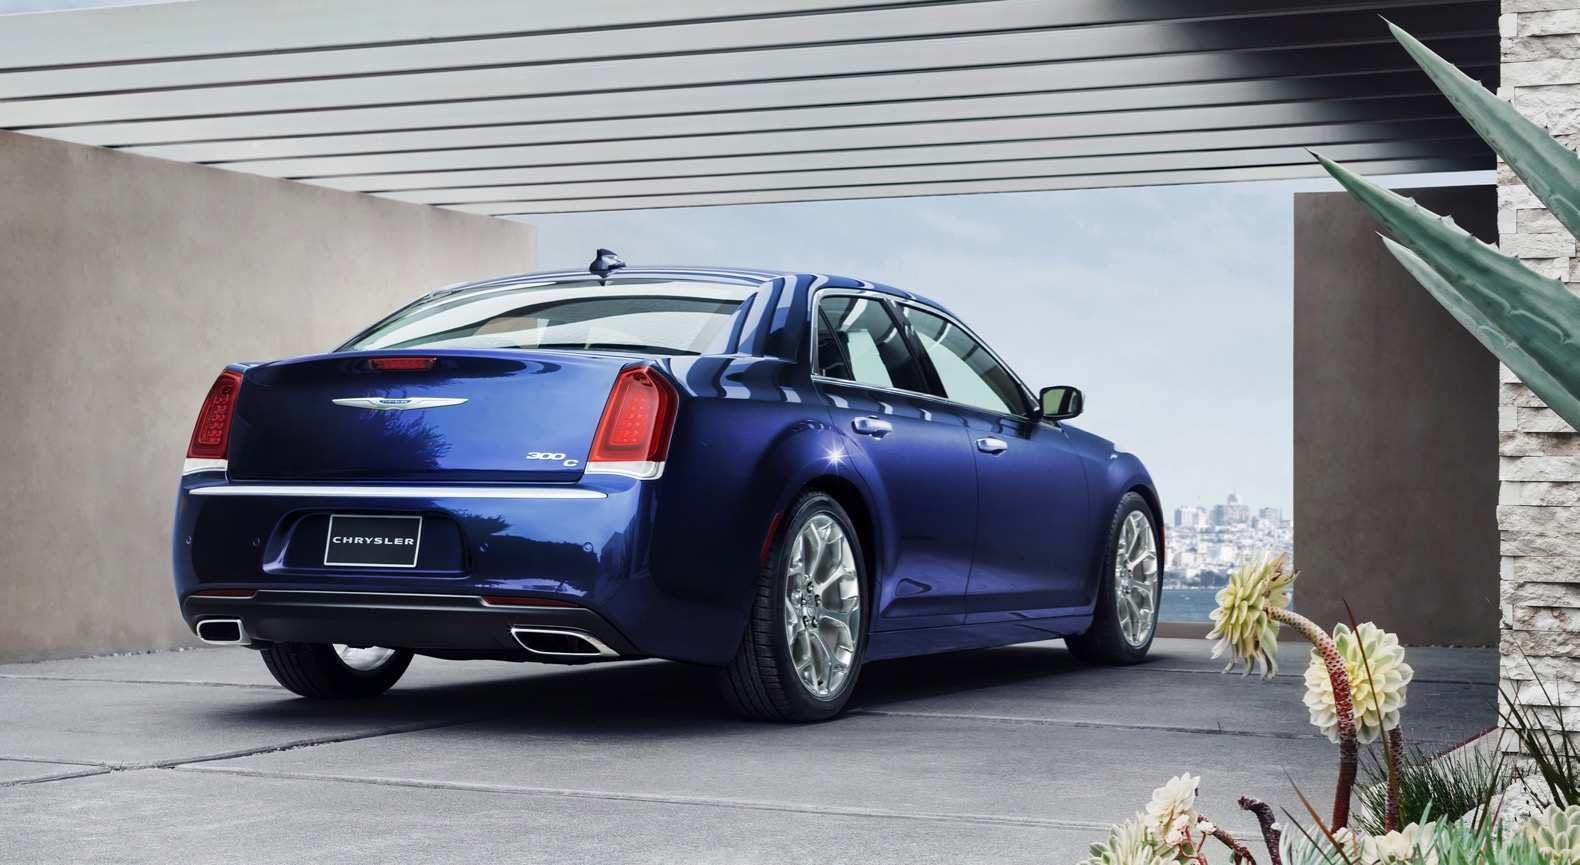 53 The Best 2020 Chrysler 300 Overview